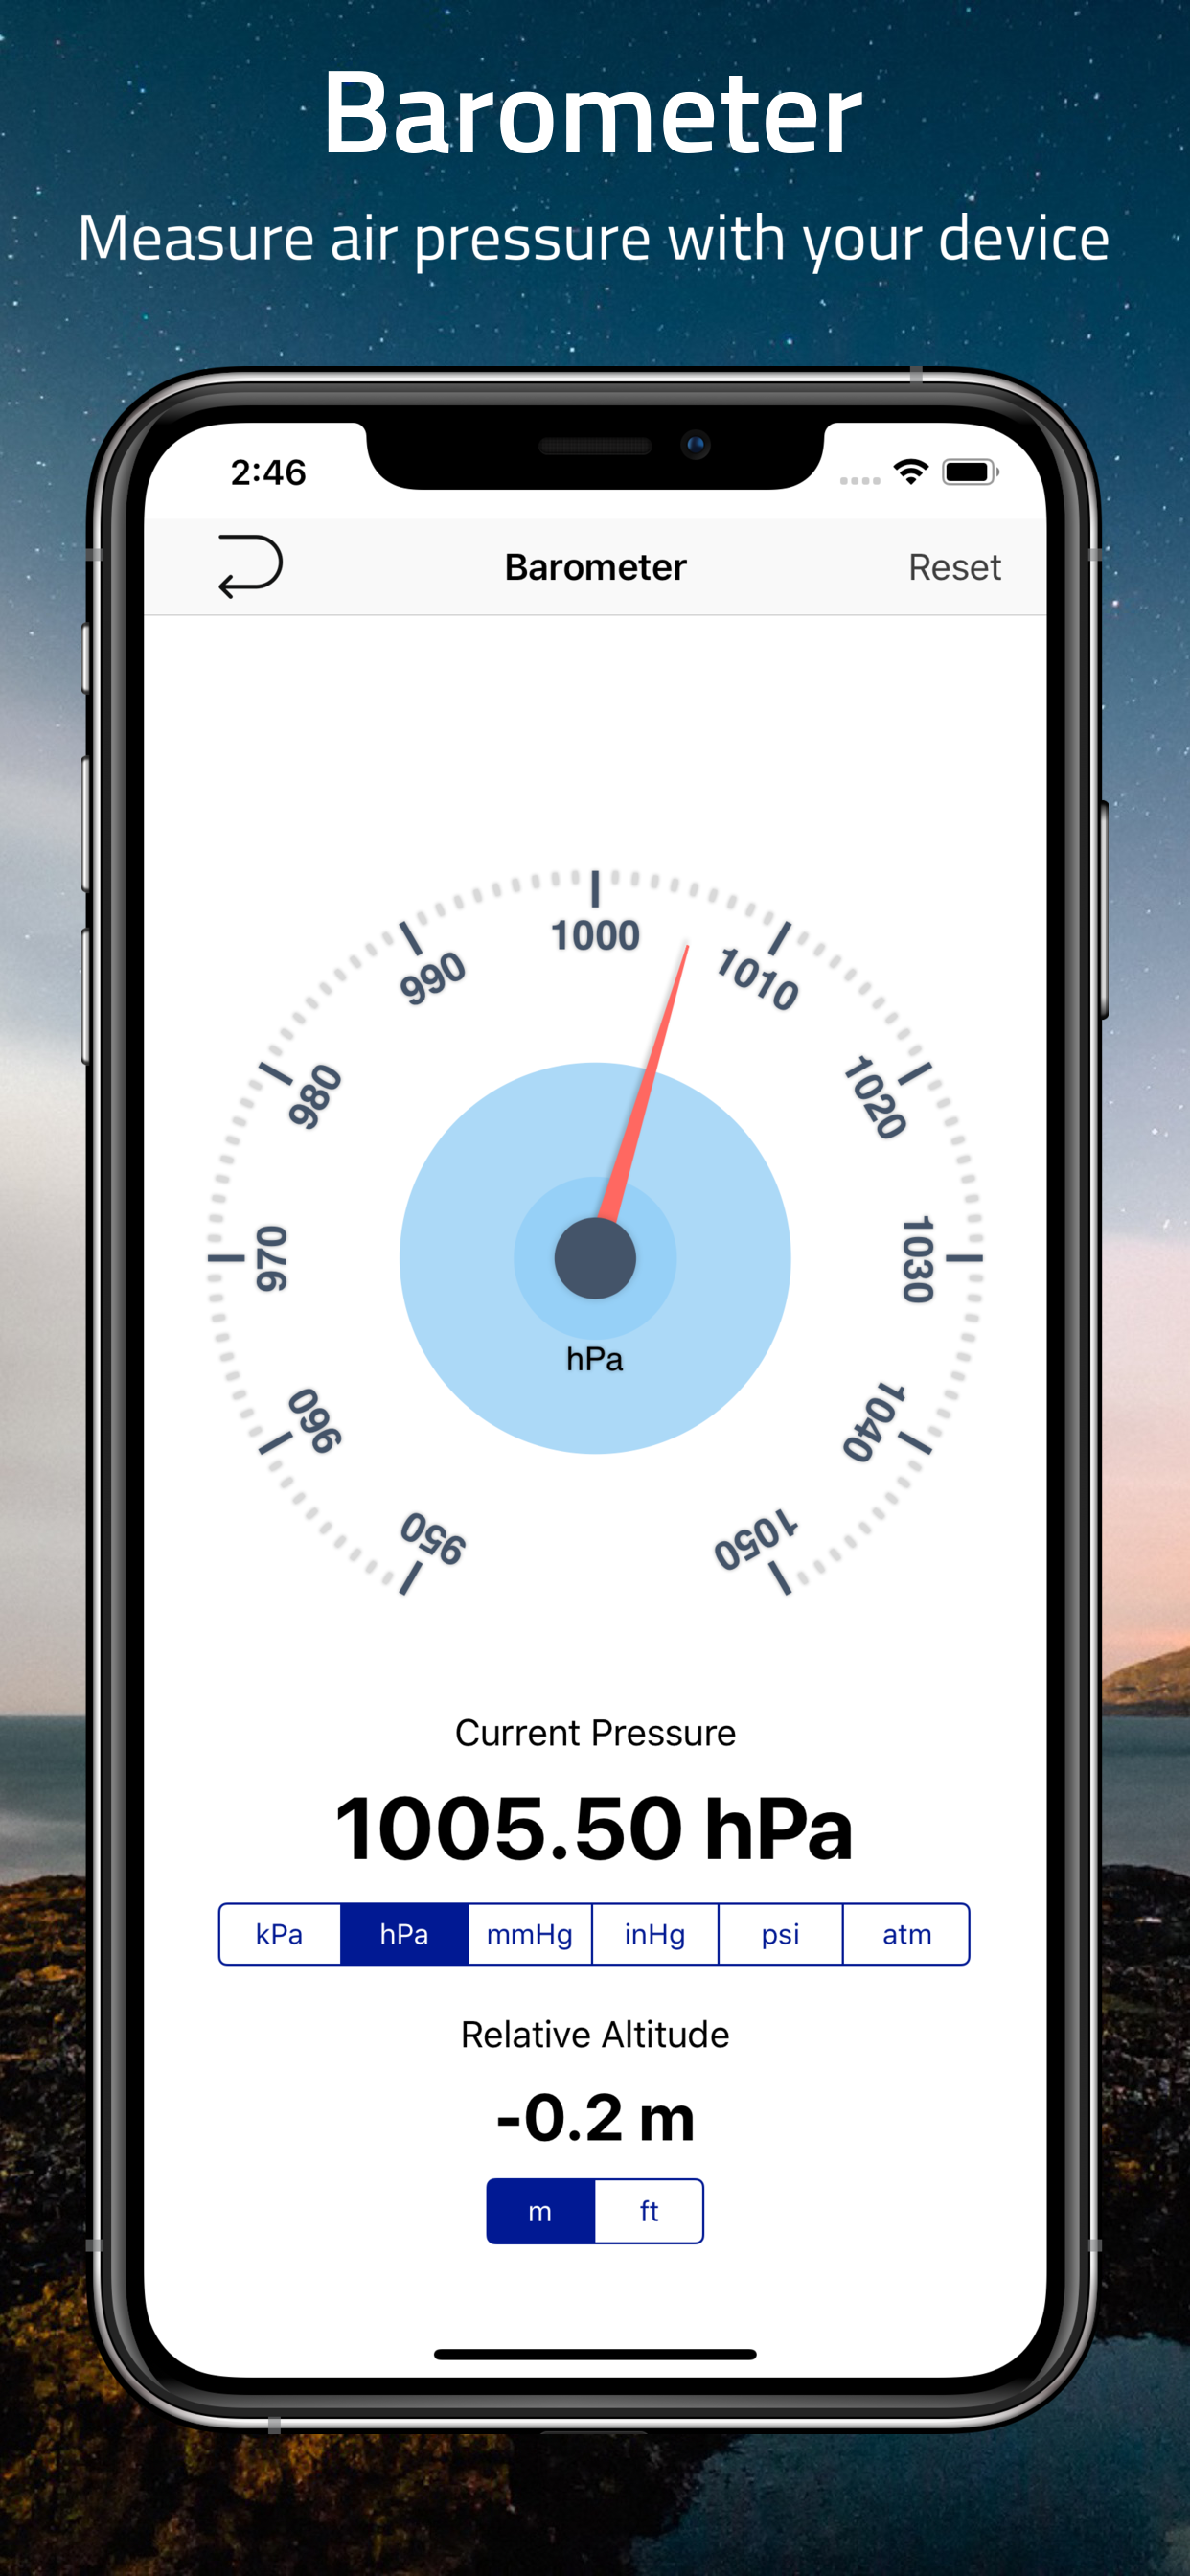 iPhone Xs Max-03Elevation - Barometer_framed.png